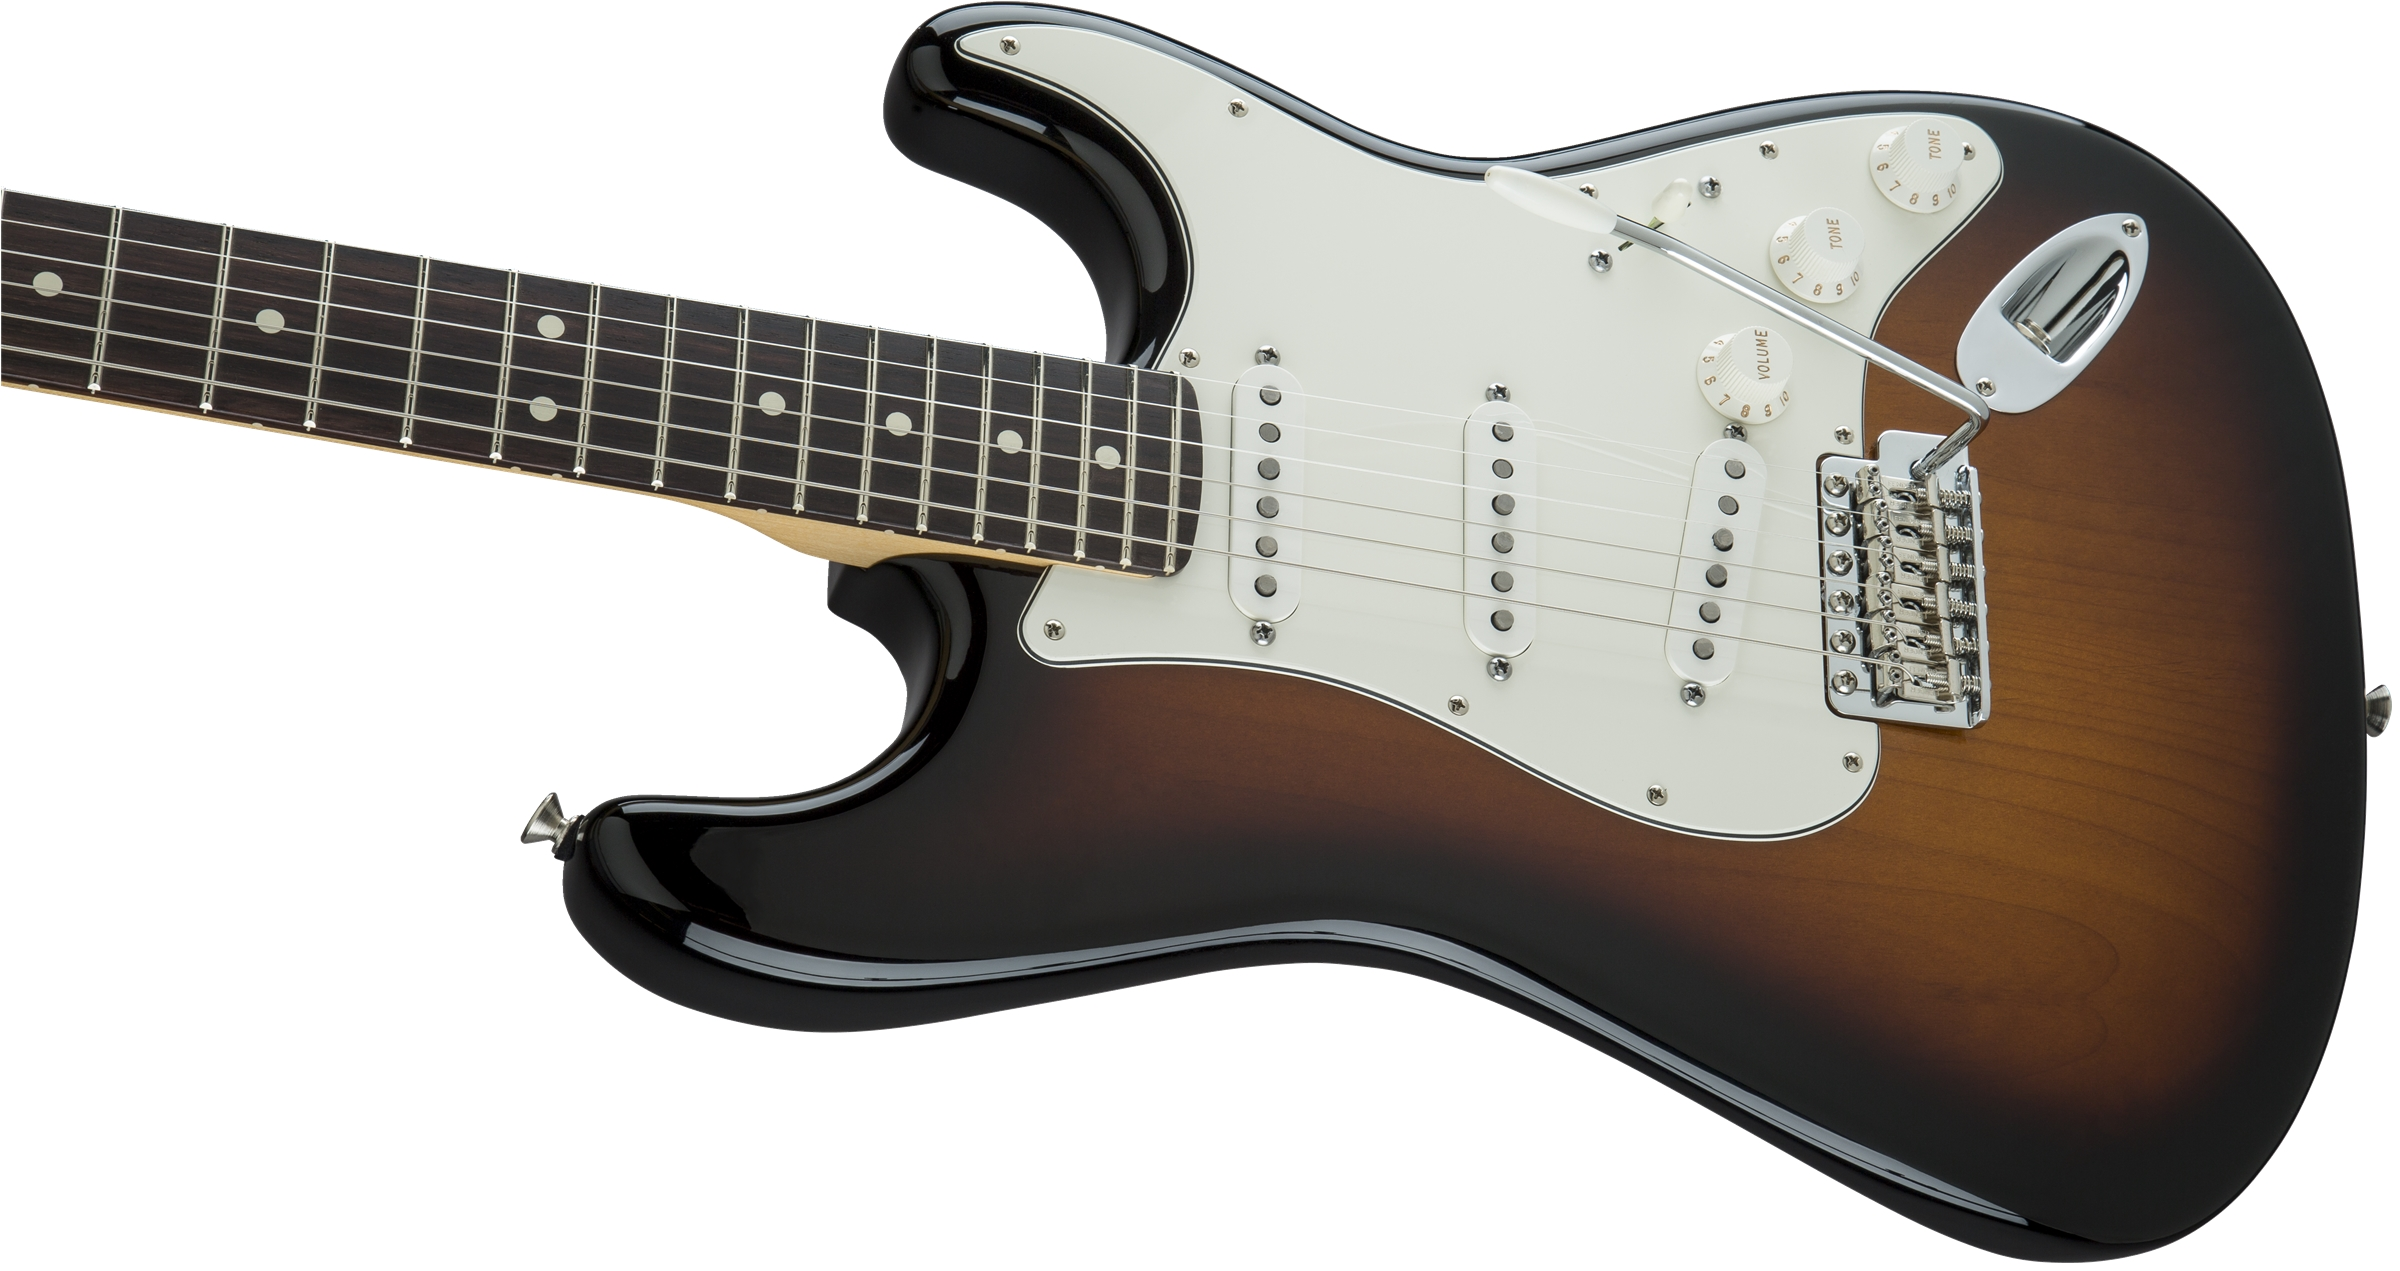 Fantastic Reznor Wiring Diagram Thick Bulldog Security Remote Starter With Keyless Entry Solid Alarm Wiring 3 Humbuckers Youthful Bulldog Security Keyless Entry PinkRemote Start Diagram American Special Stratocaster® | Fender Electric Guitars